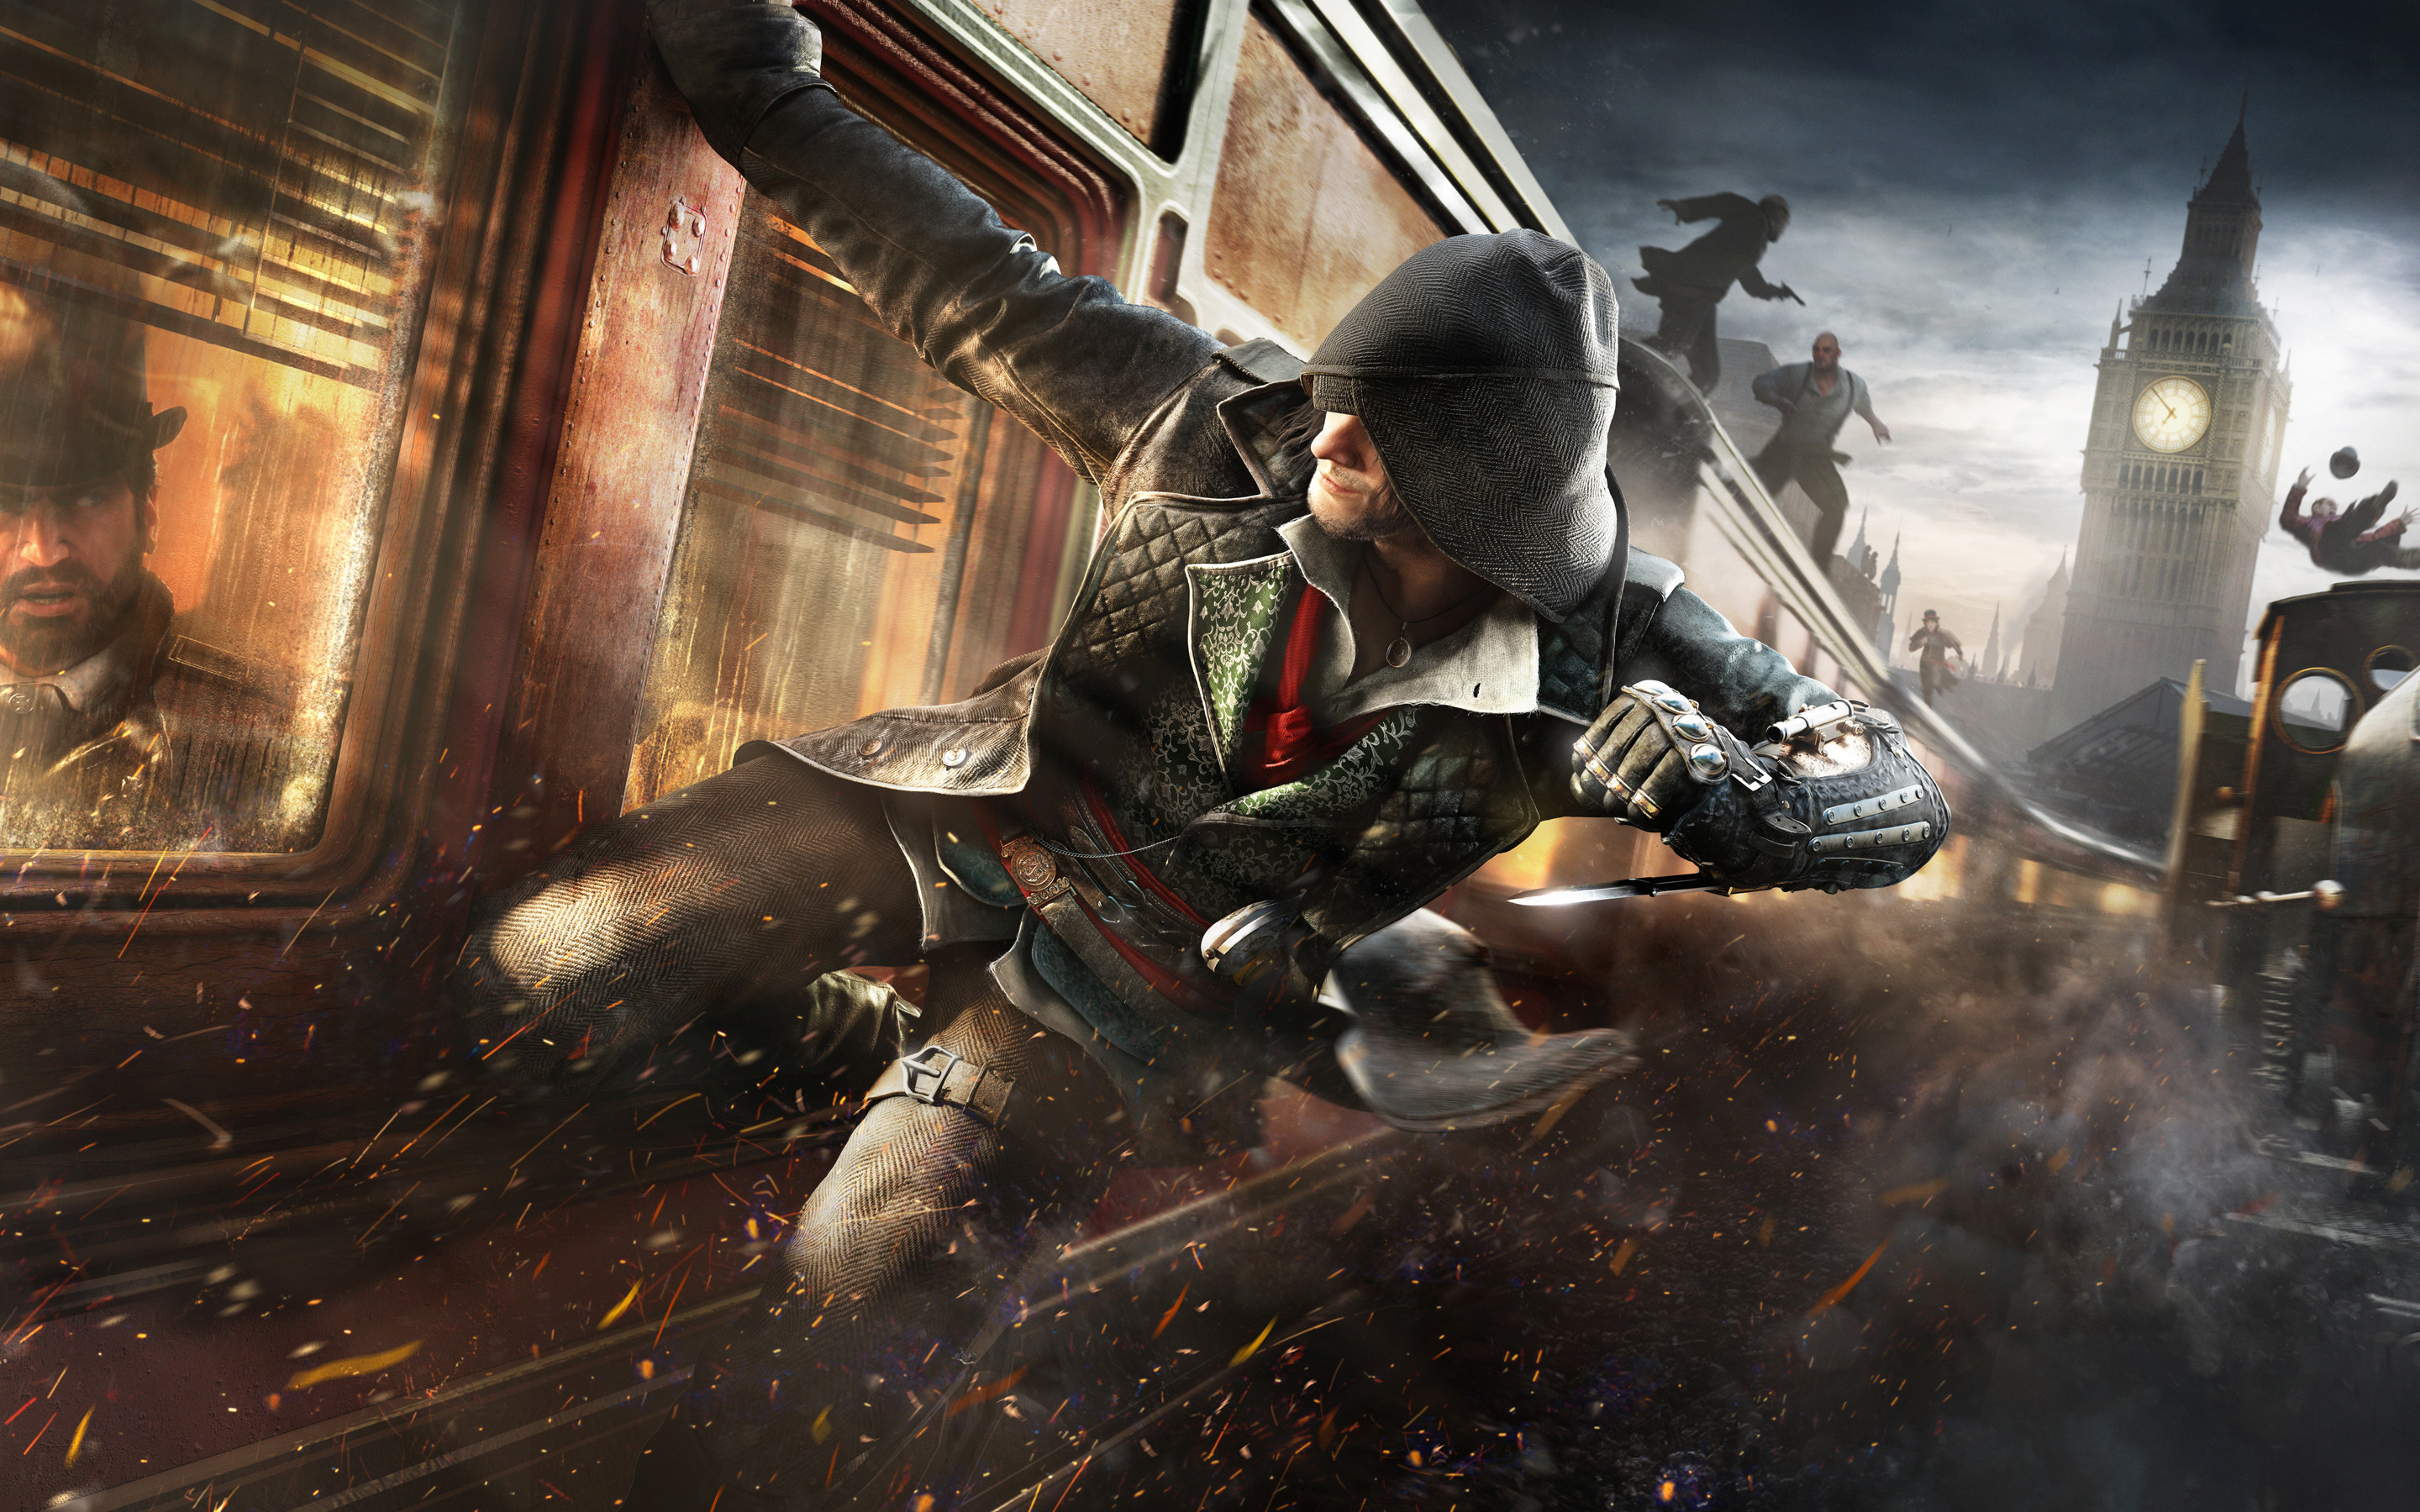 2880x1800 Assassin's Creed Syndicate Video Game